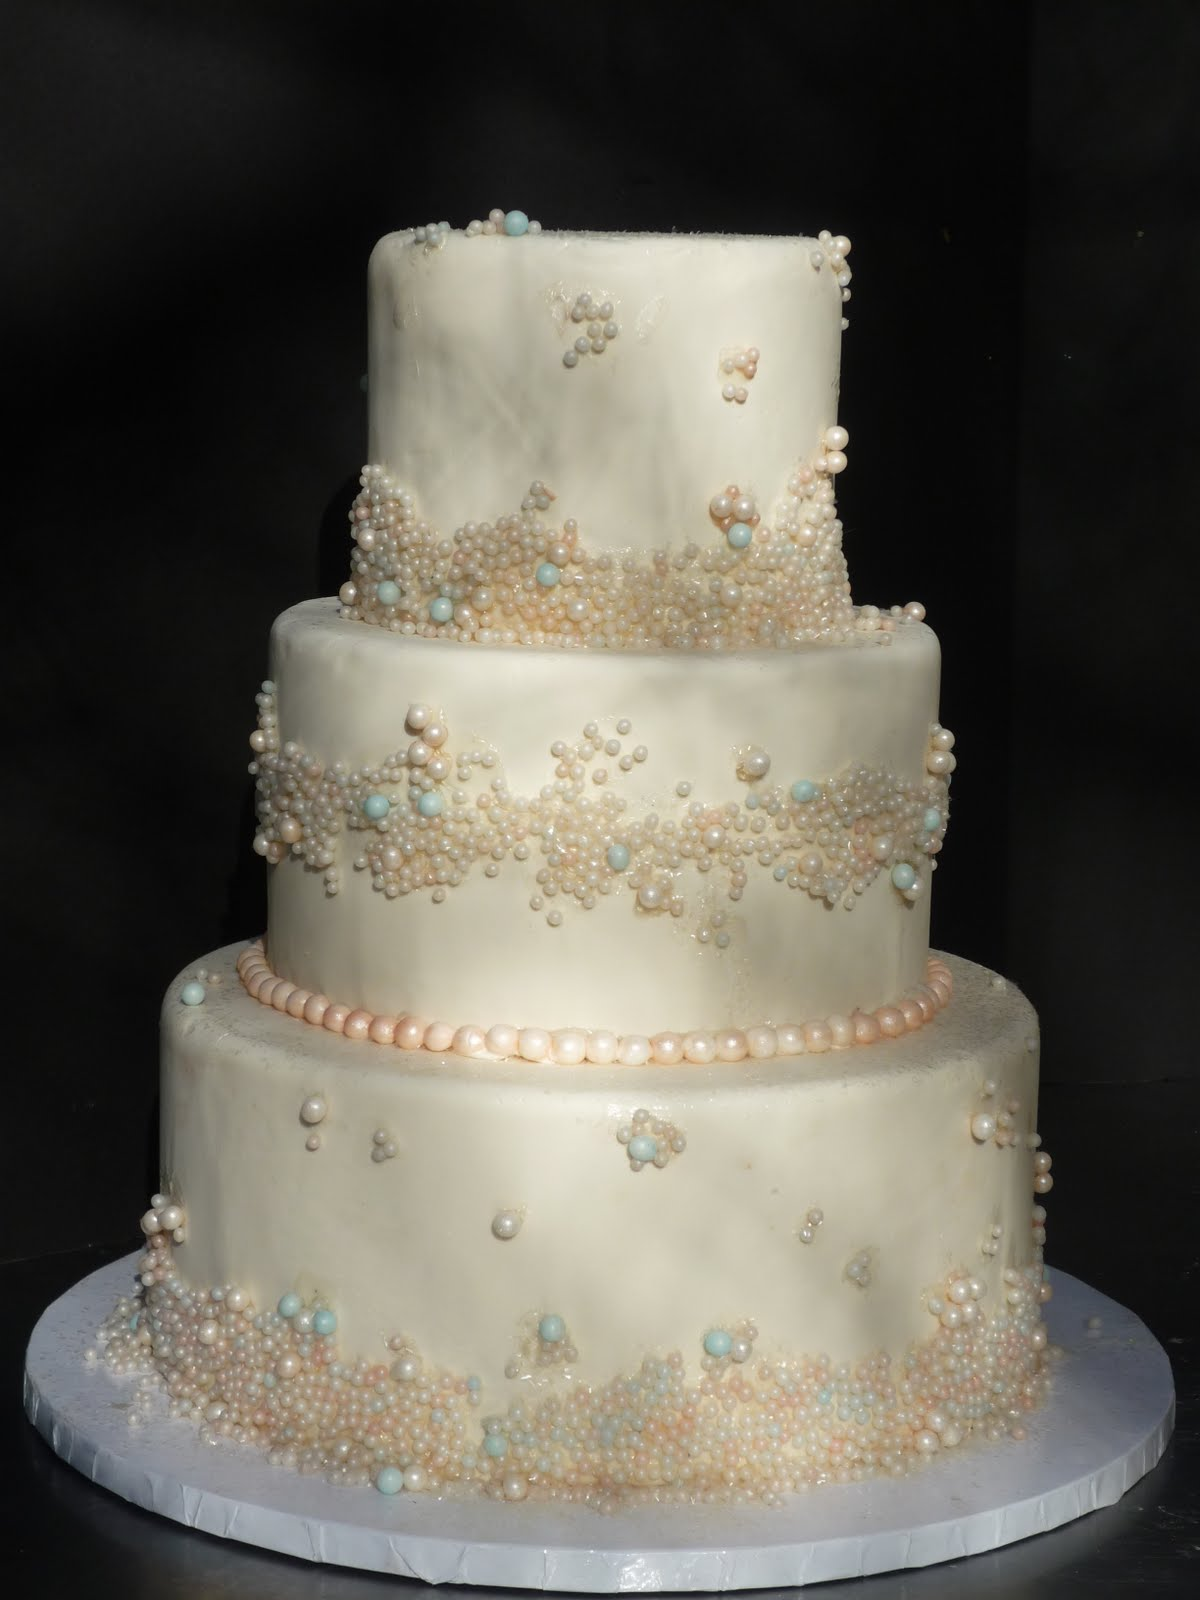 Artisan Bake Shop: Wedding Cake: Fondant Tiers with Pearls